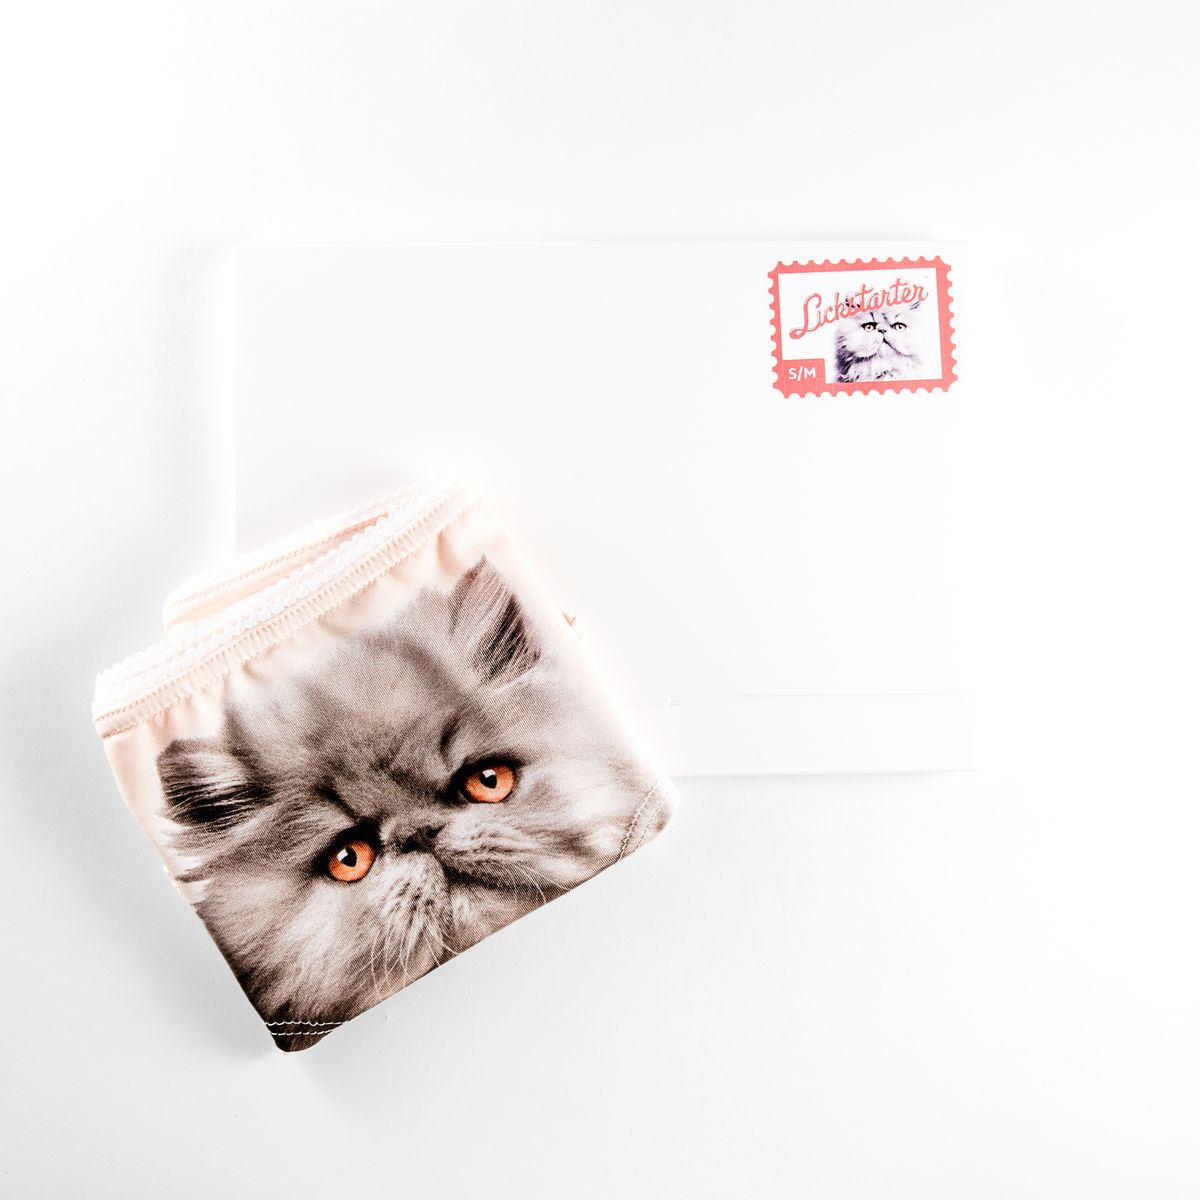 Grumpy puss - product images  of